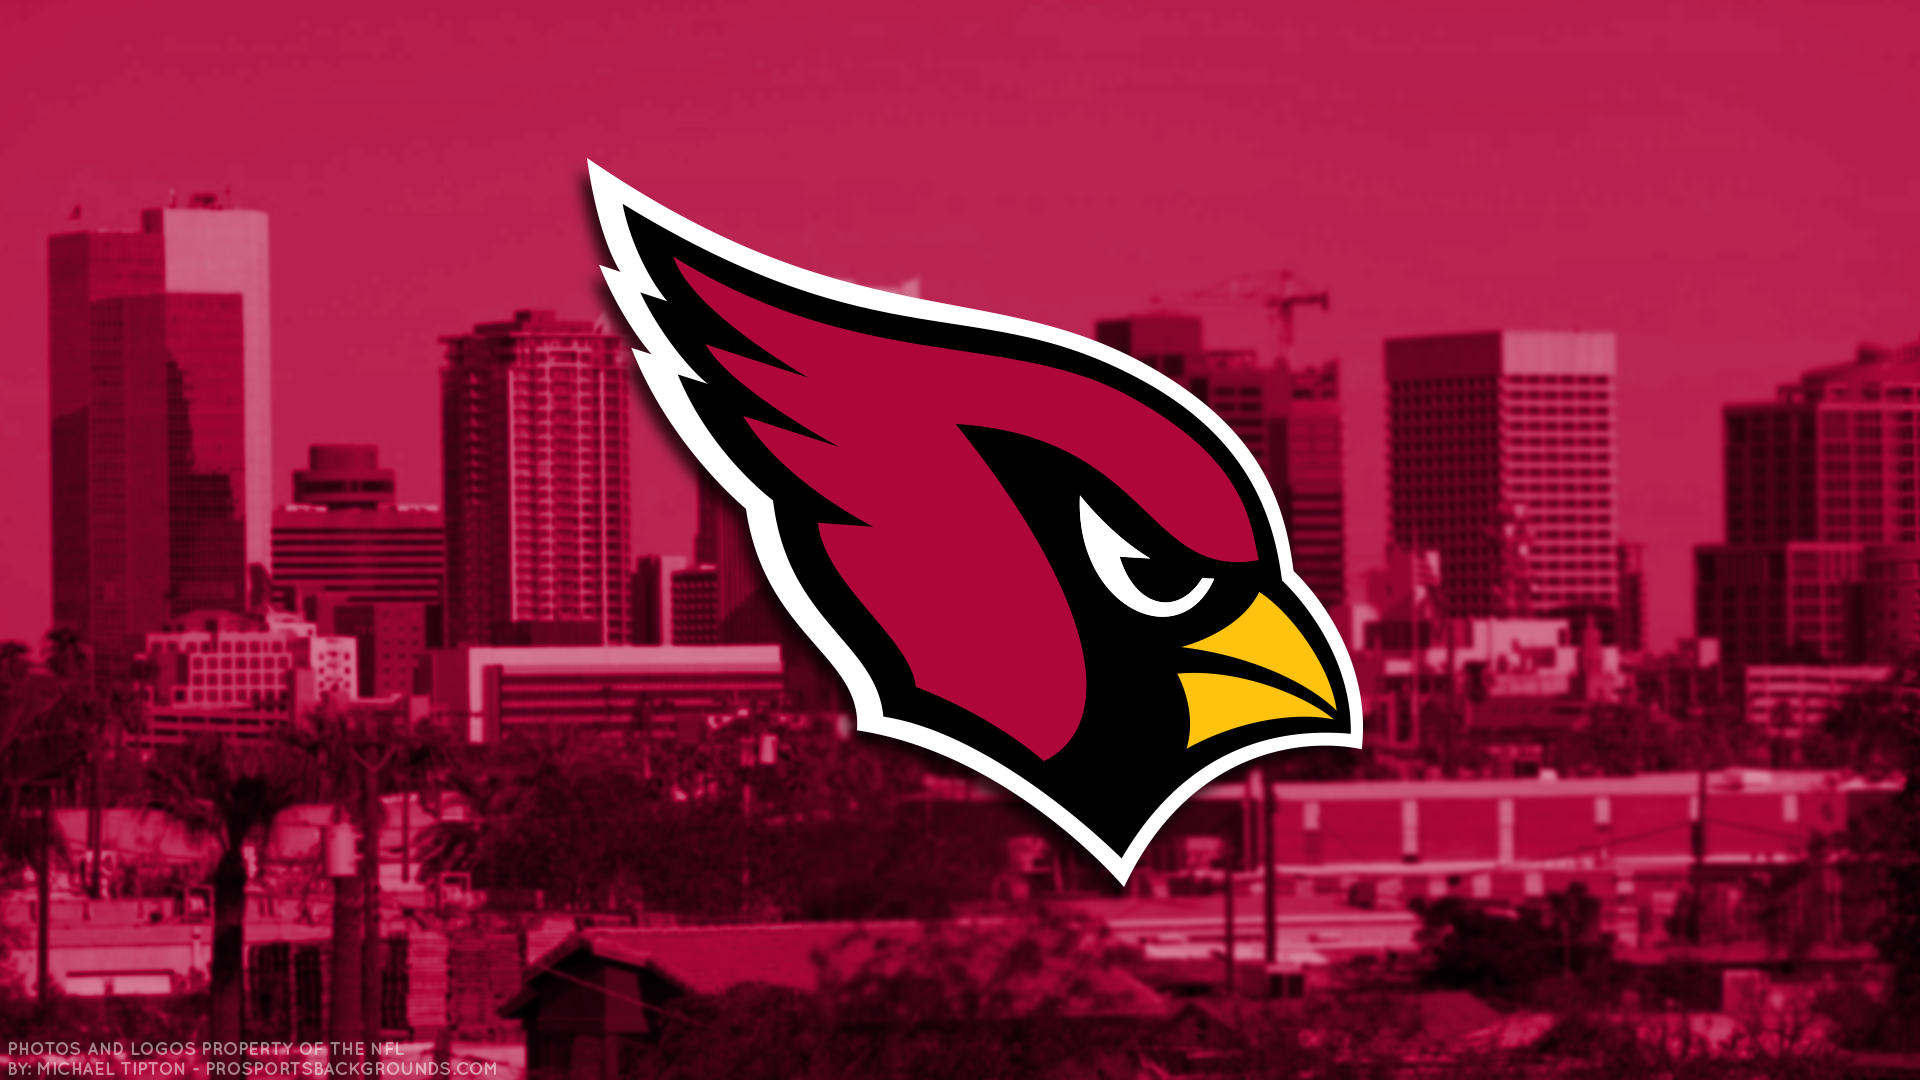 Arizona Cardinals HD Wallpaper | Background Image | 1920x1080 | ID:981706 - Wallpaper Abyss